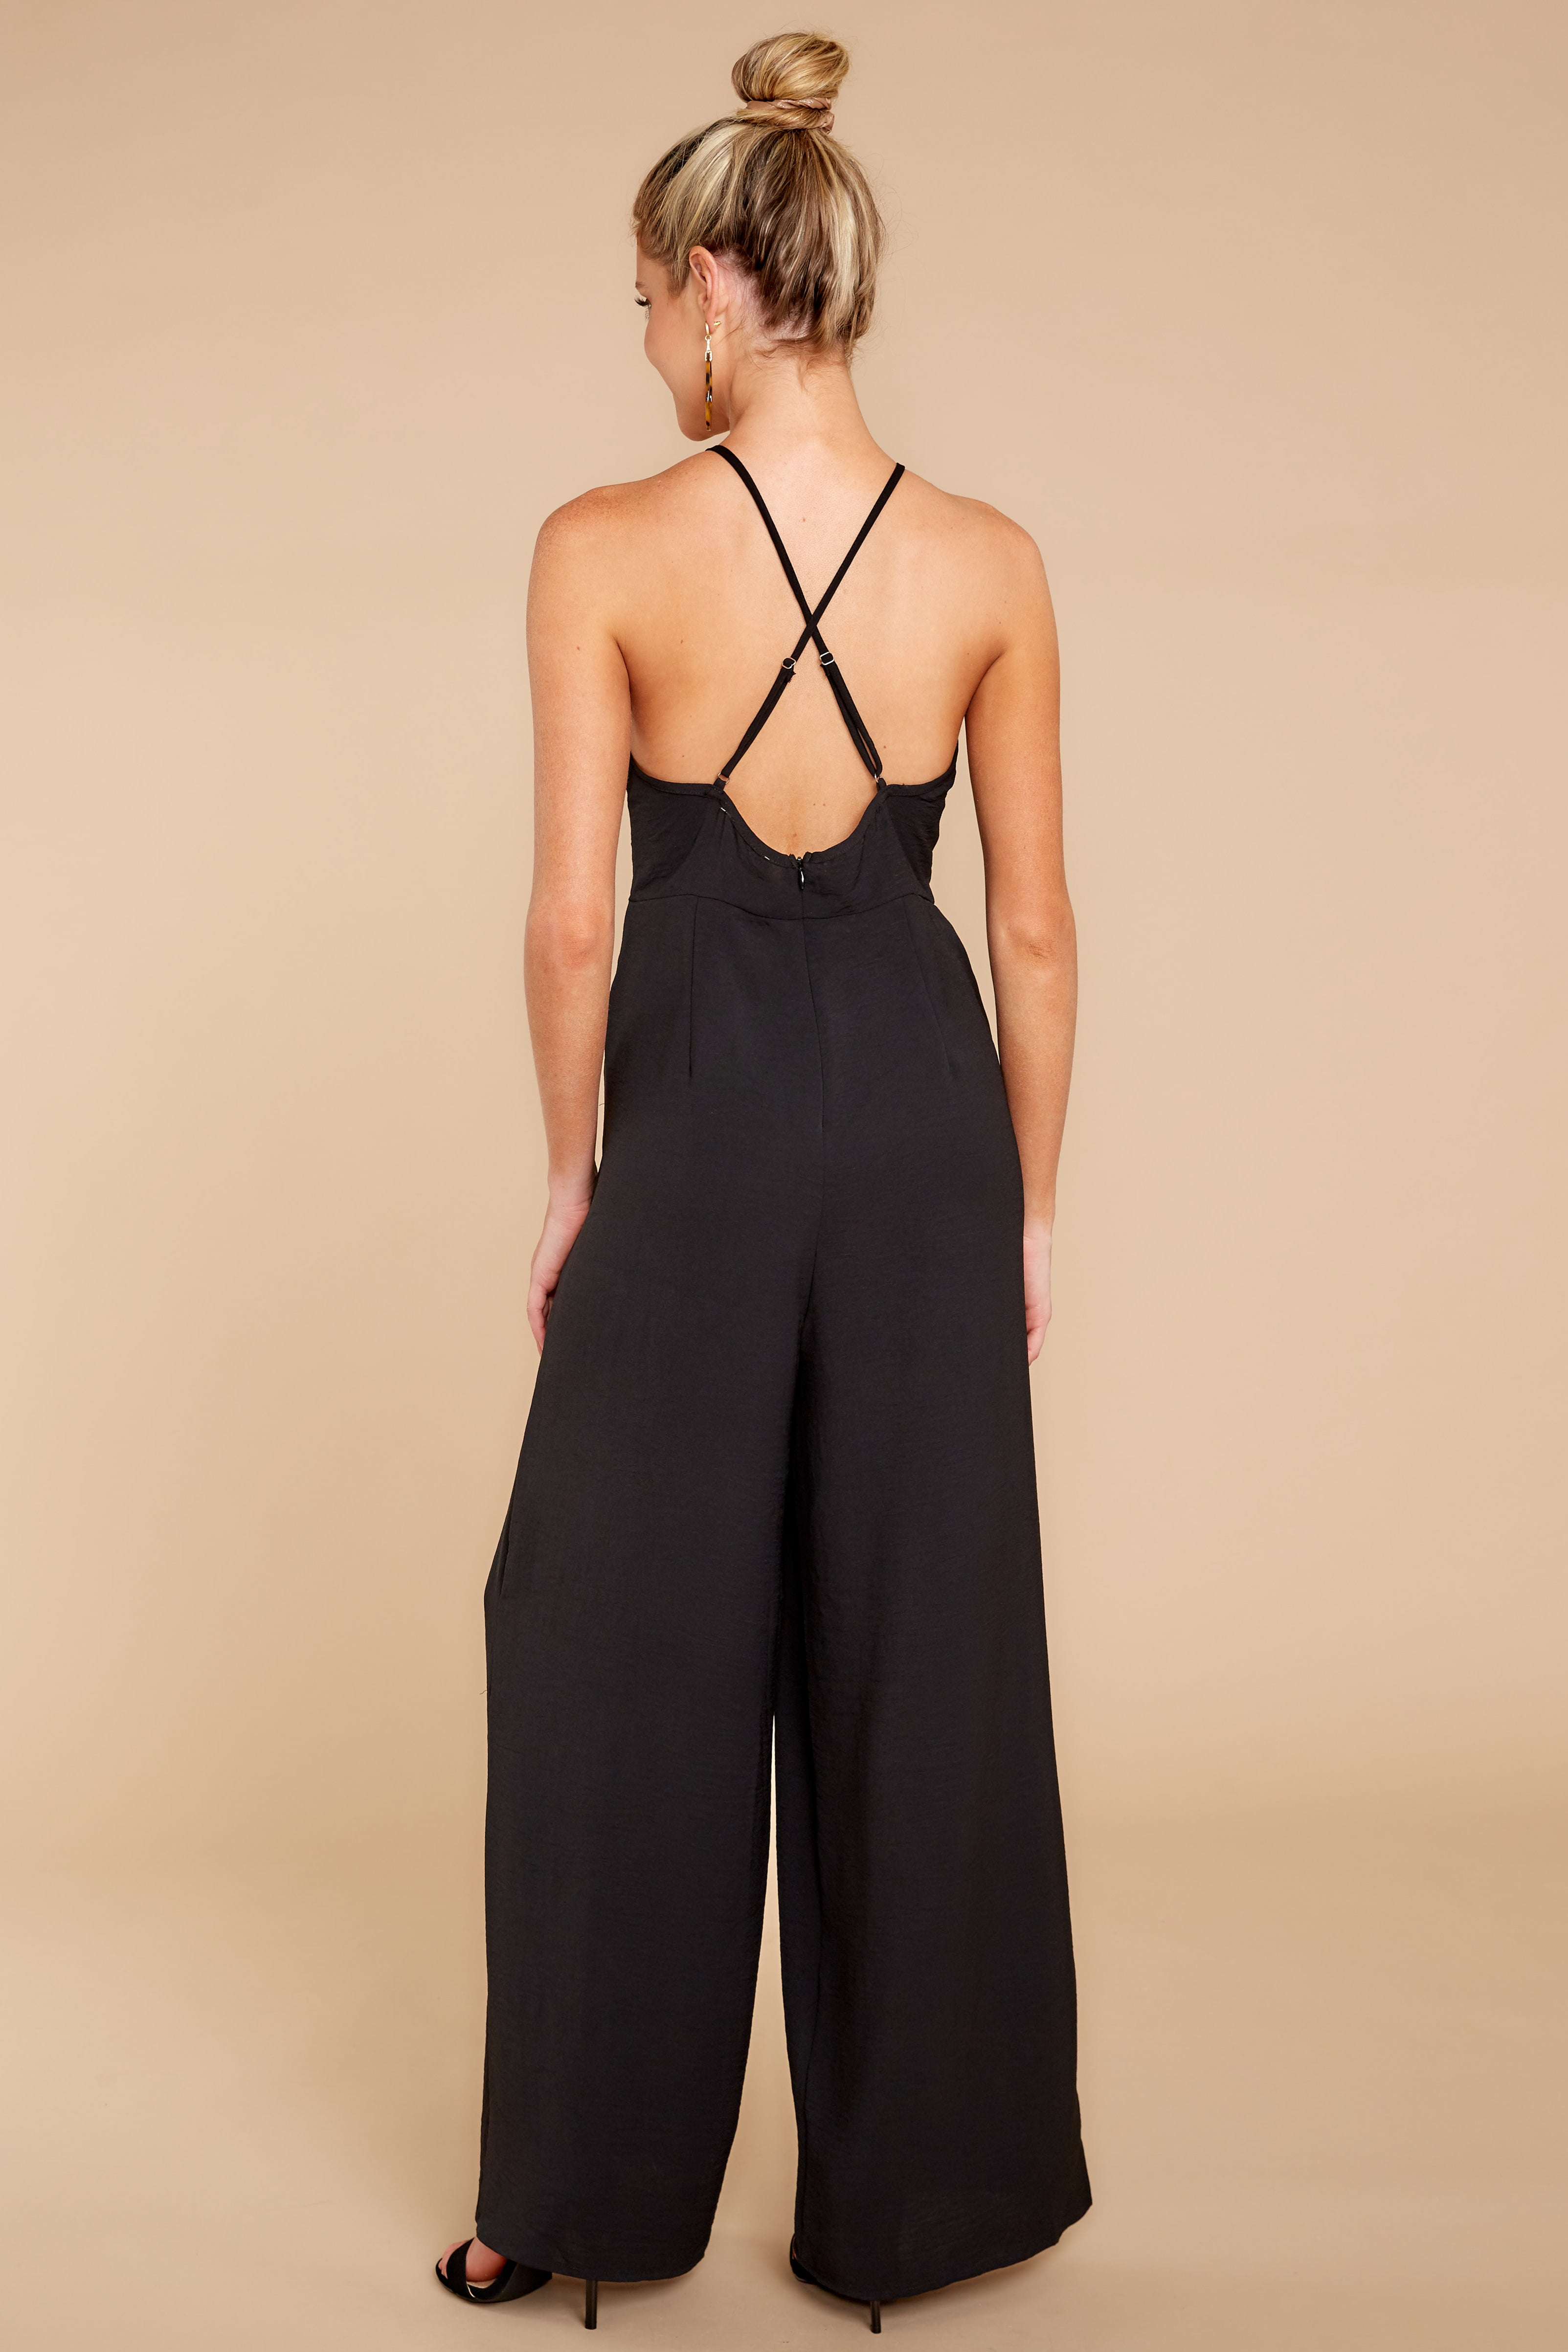 6 No More Games Black Jumpsuit at reddressboutique.com